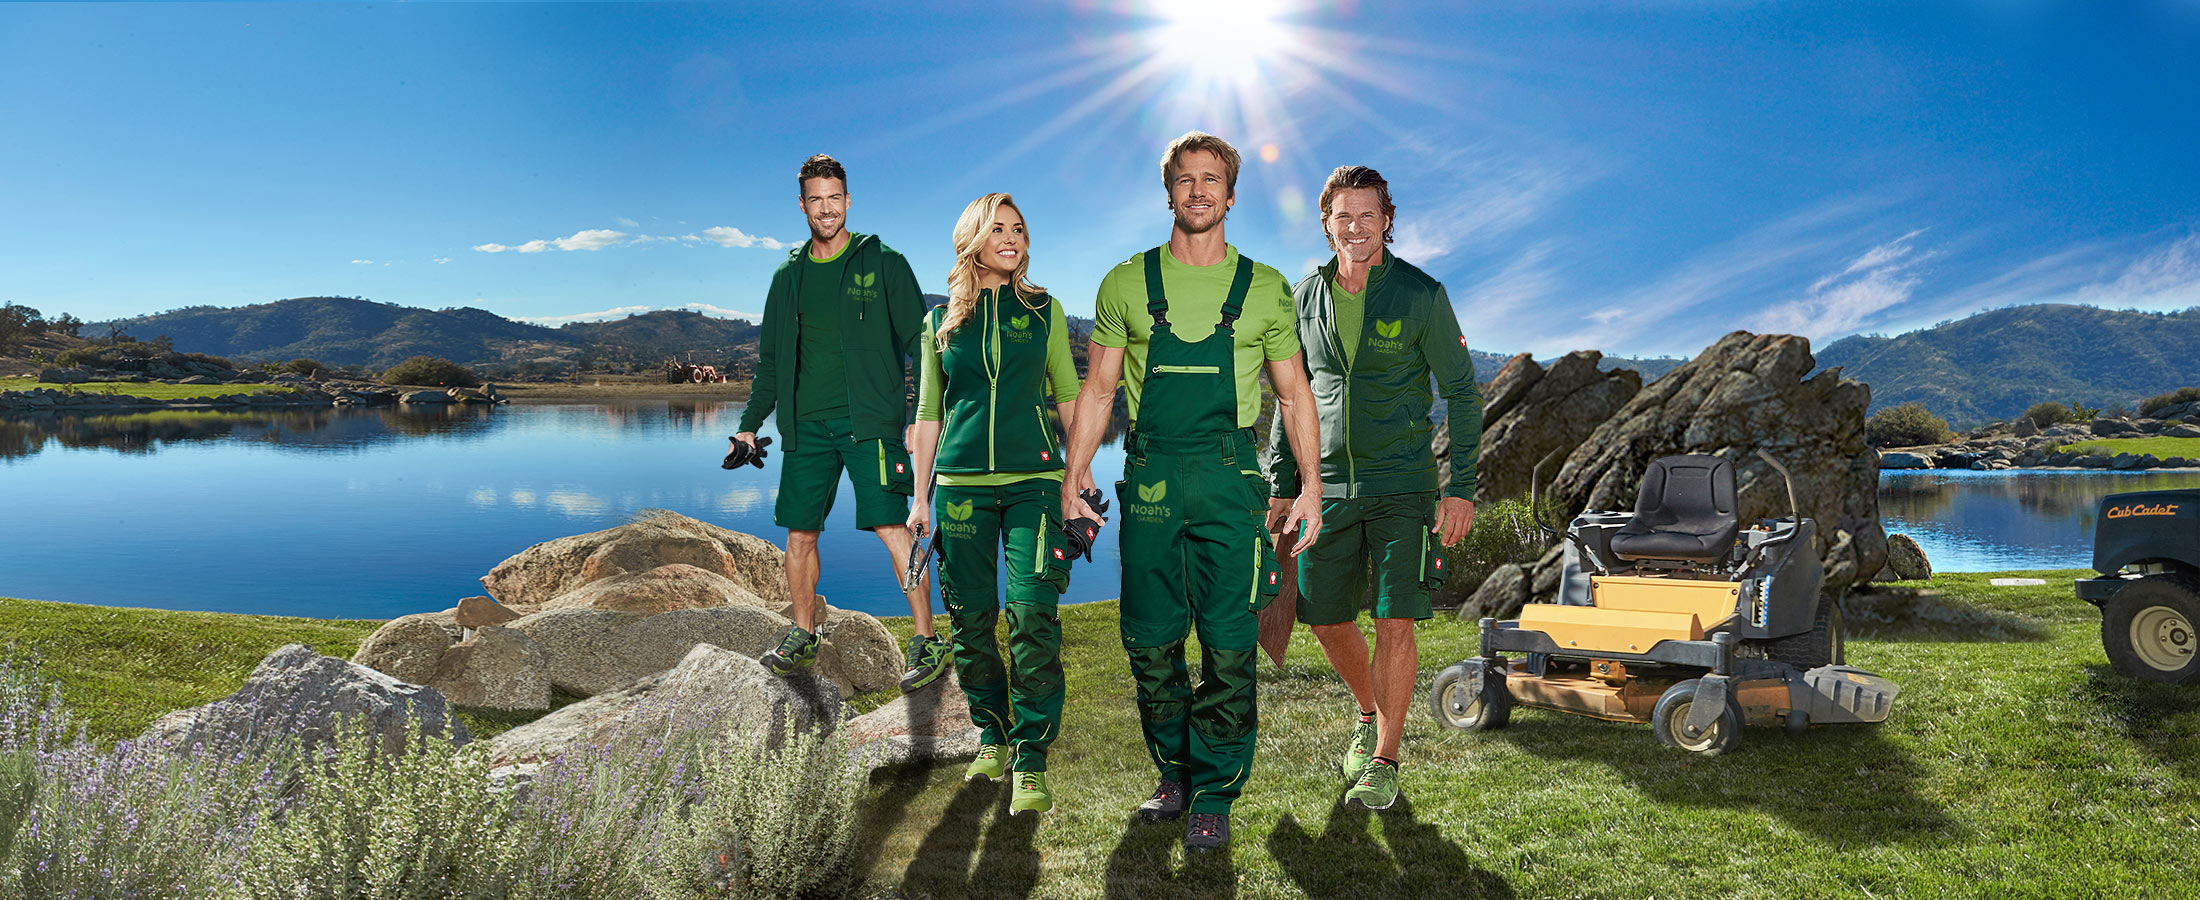 engelbert strauss workwear - the perfect team outfit with company logo